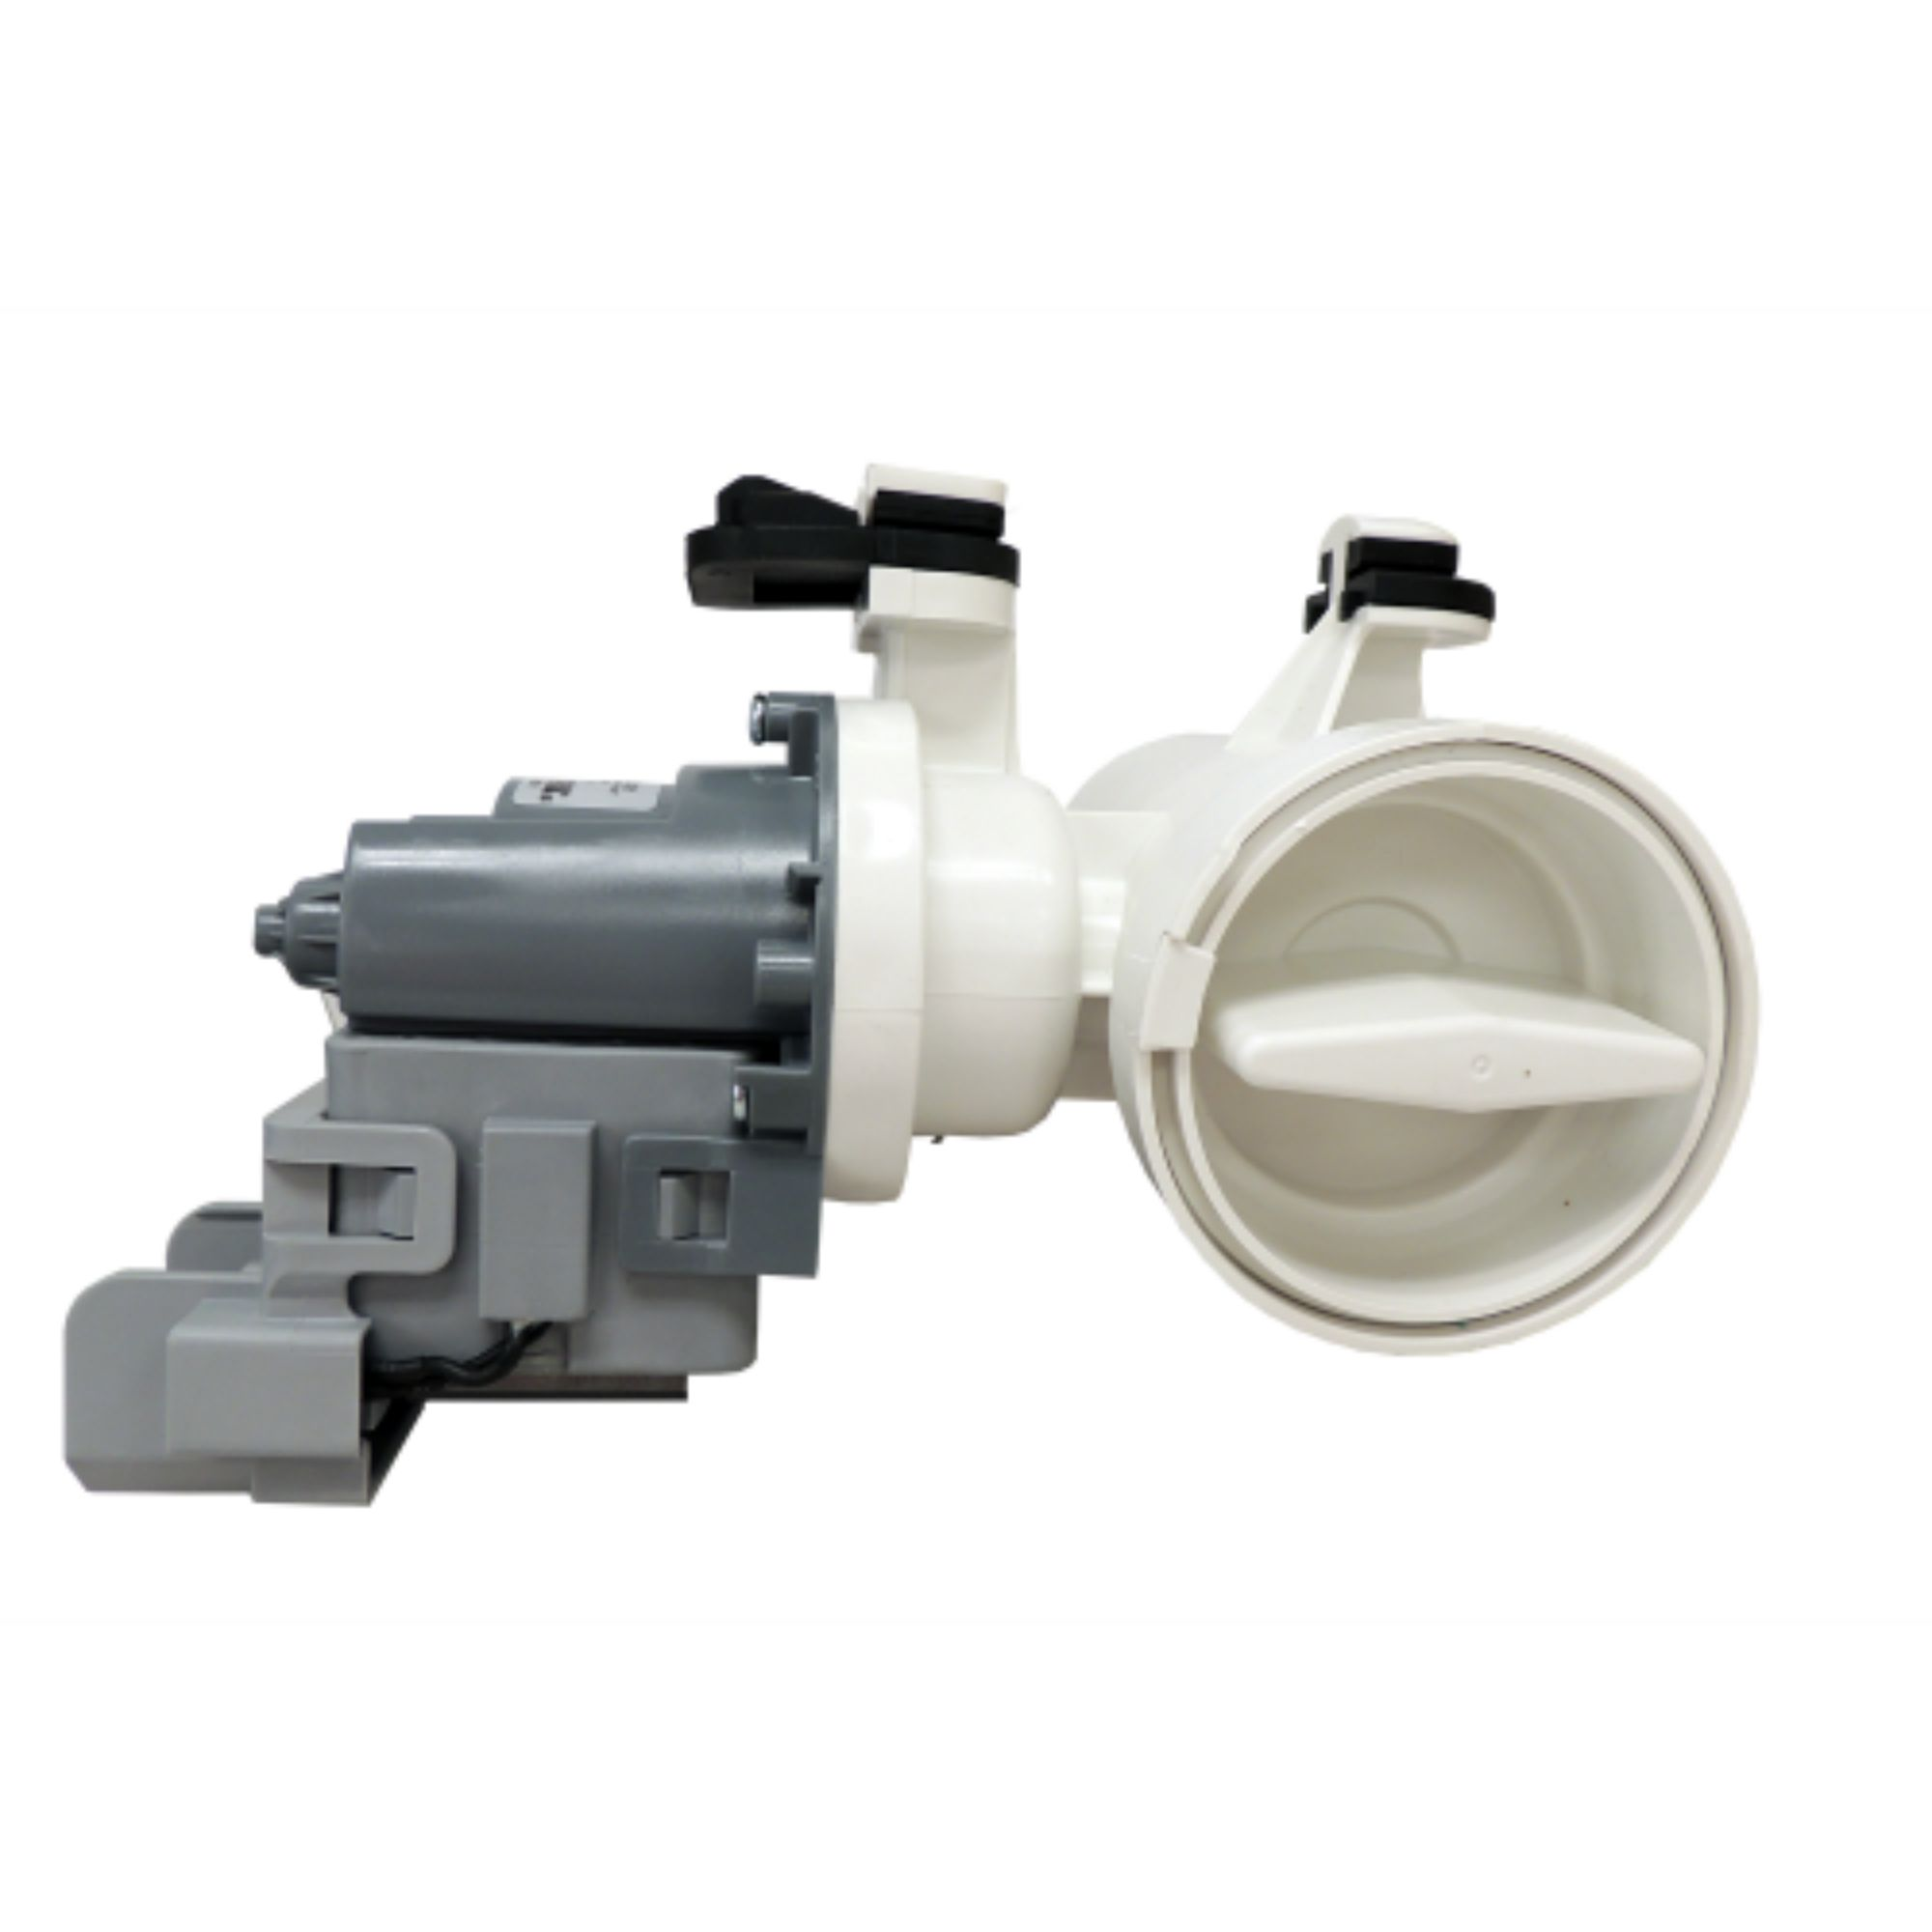 Replacement Washing Machine Drain Pump Replaces Whirlpool